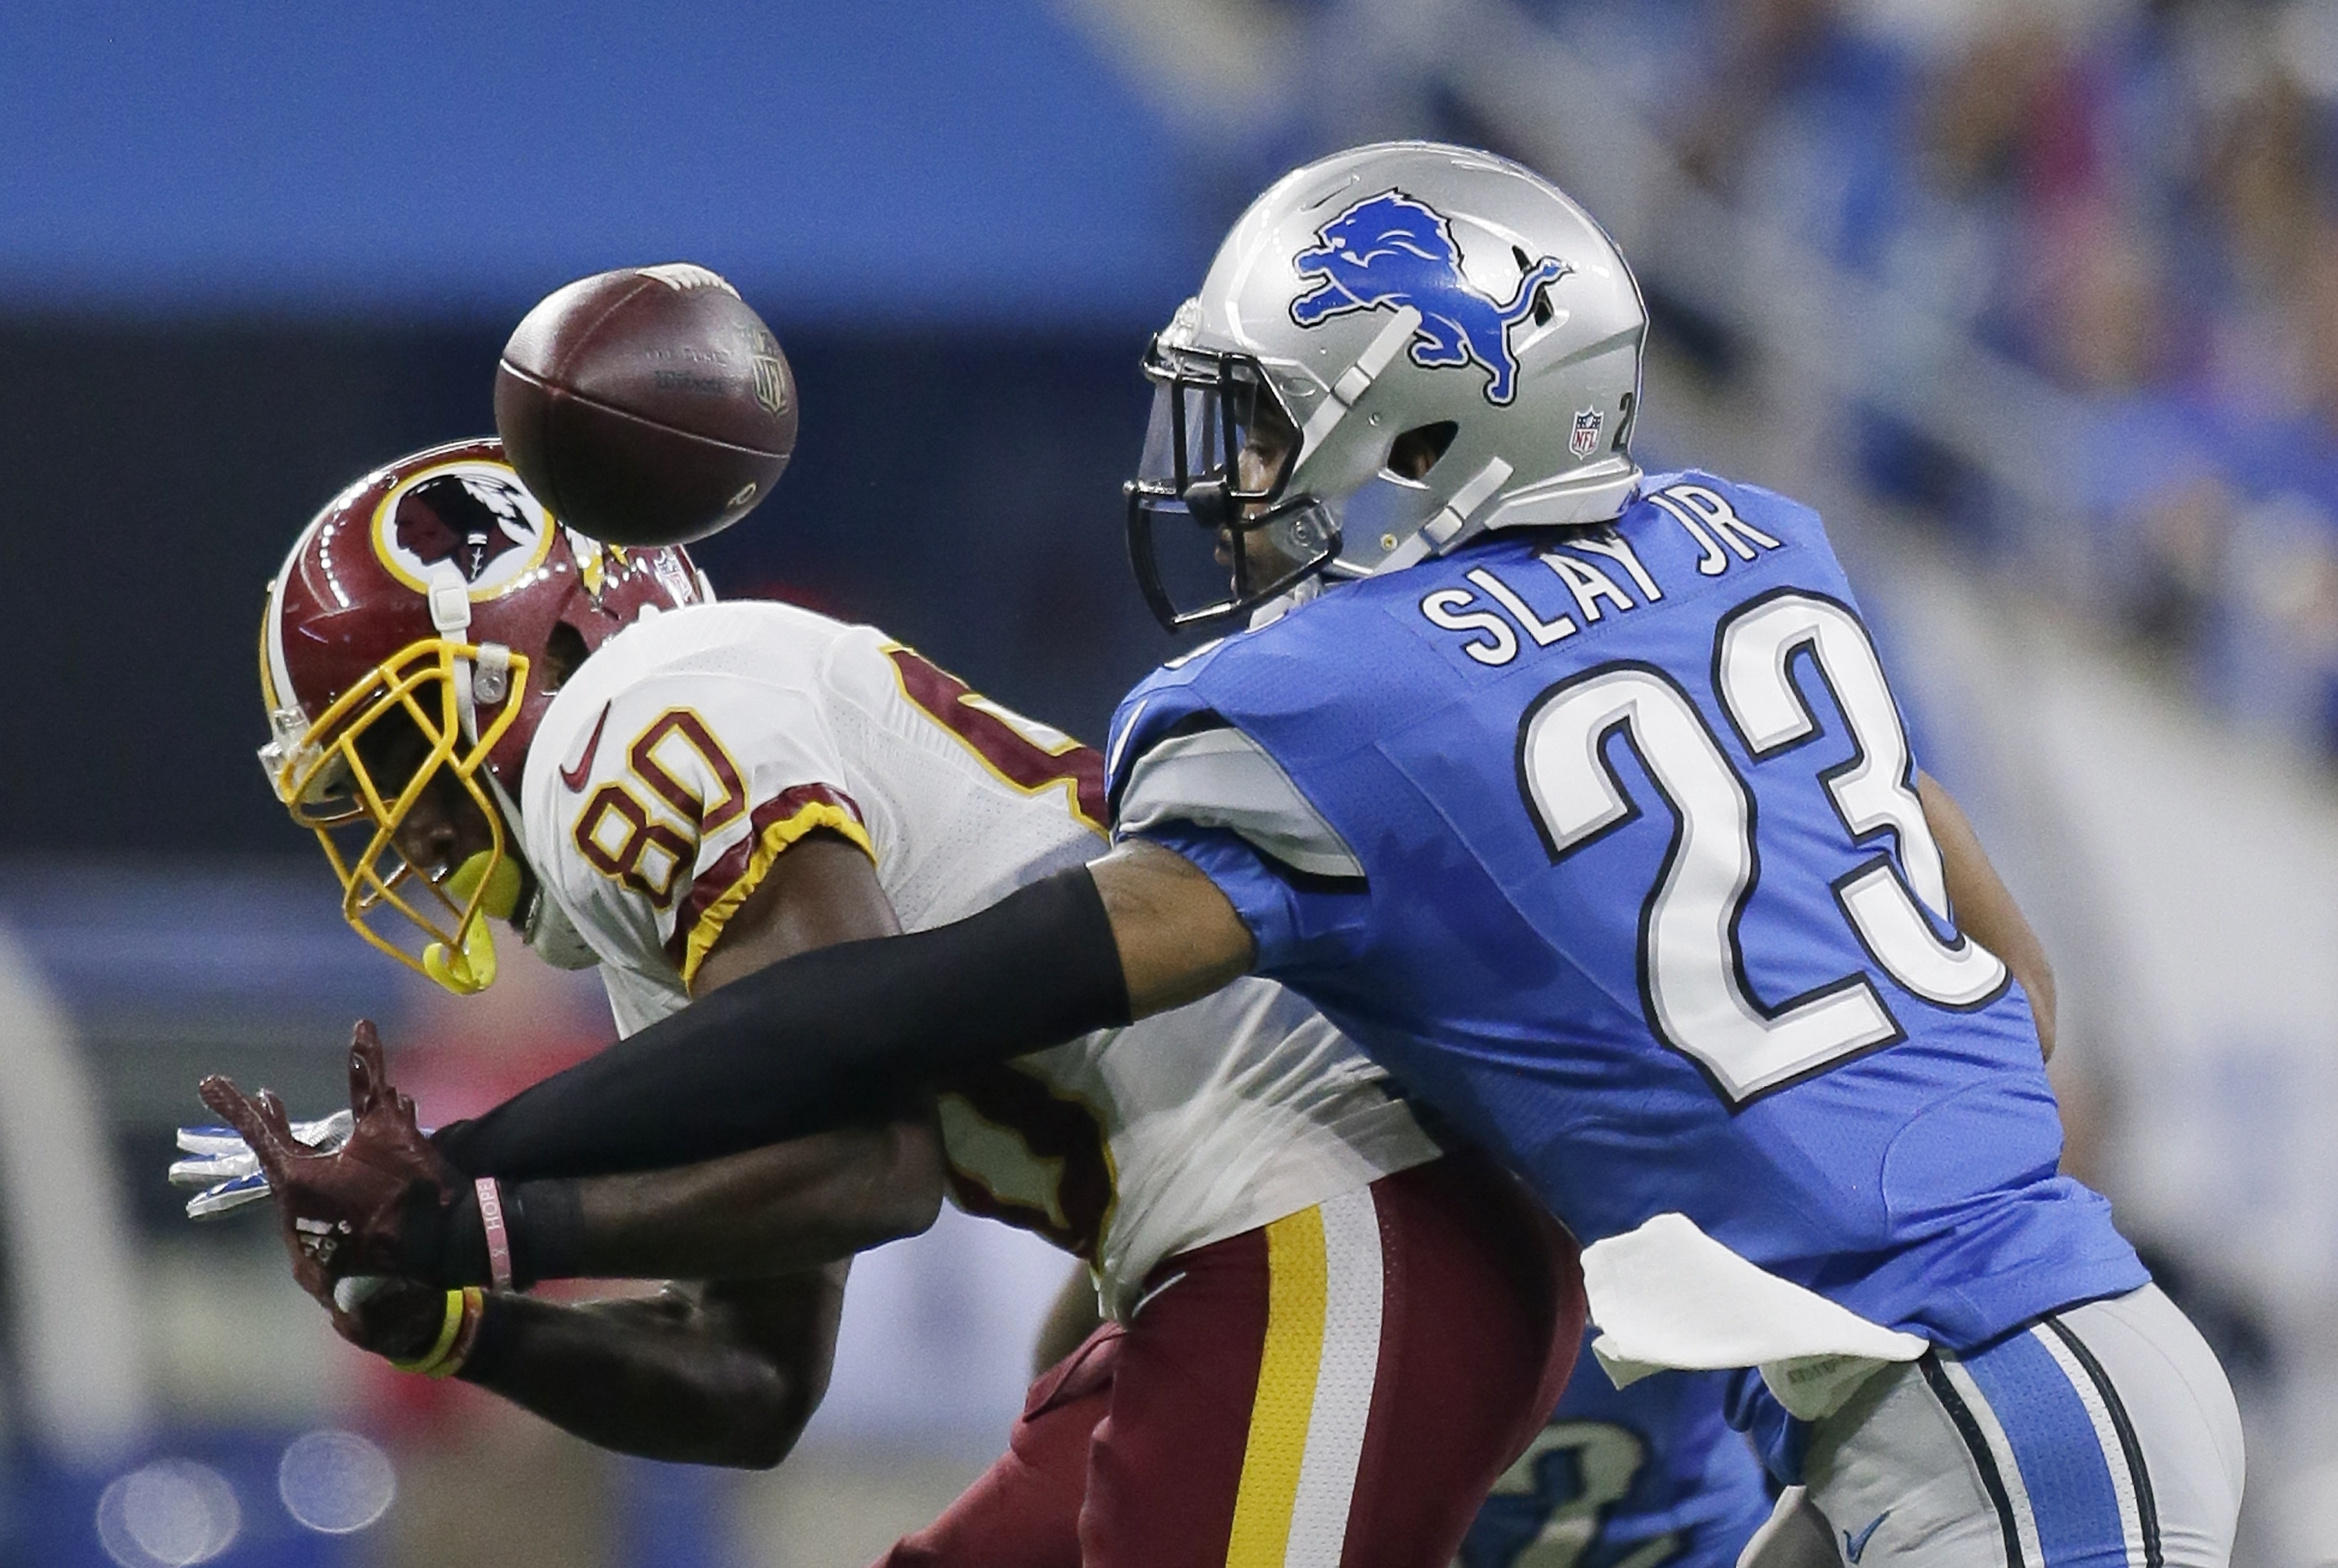 Detroit Lions cornerback Darius Slay (23) deflects a pass intended for Washington Redskins wide receiver Jamison Crowder (80) during the first half of an NFL football game, Sunday, Oct. 23, 2016 in Detroit. (AP Photo/Duane Burleson)